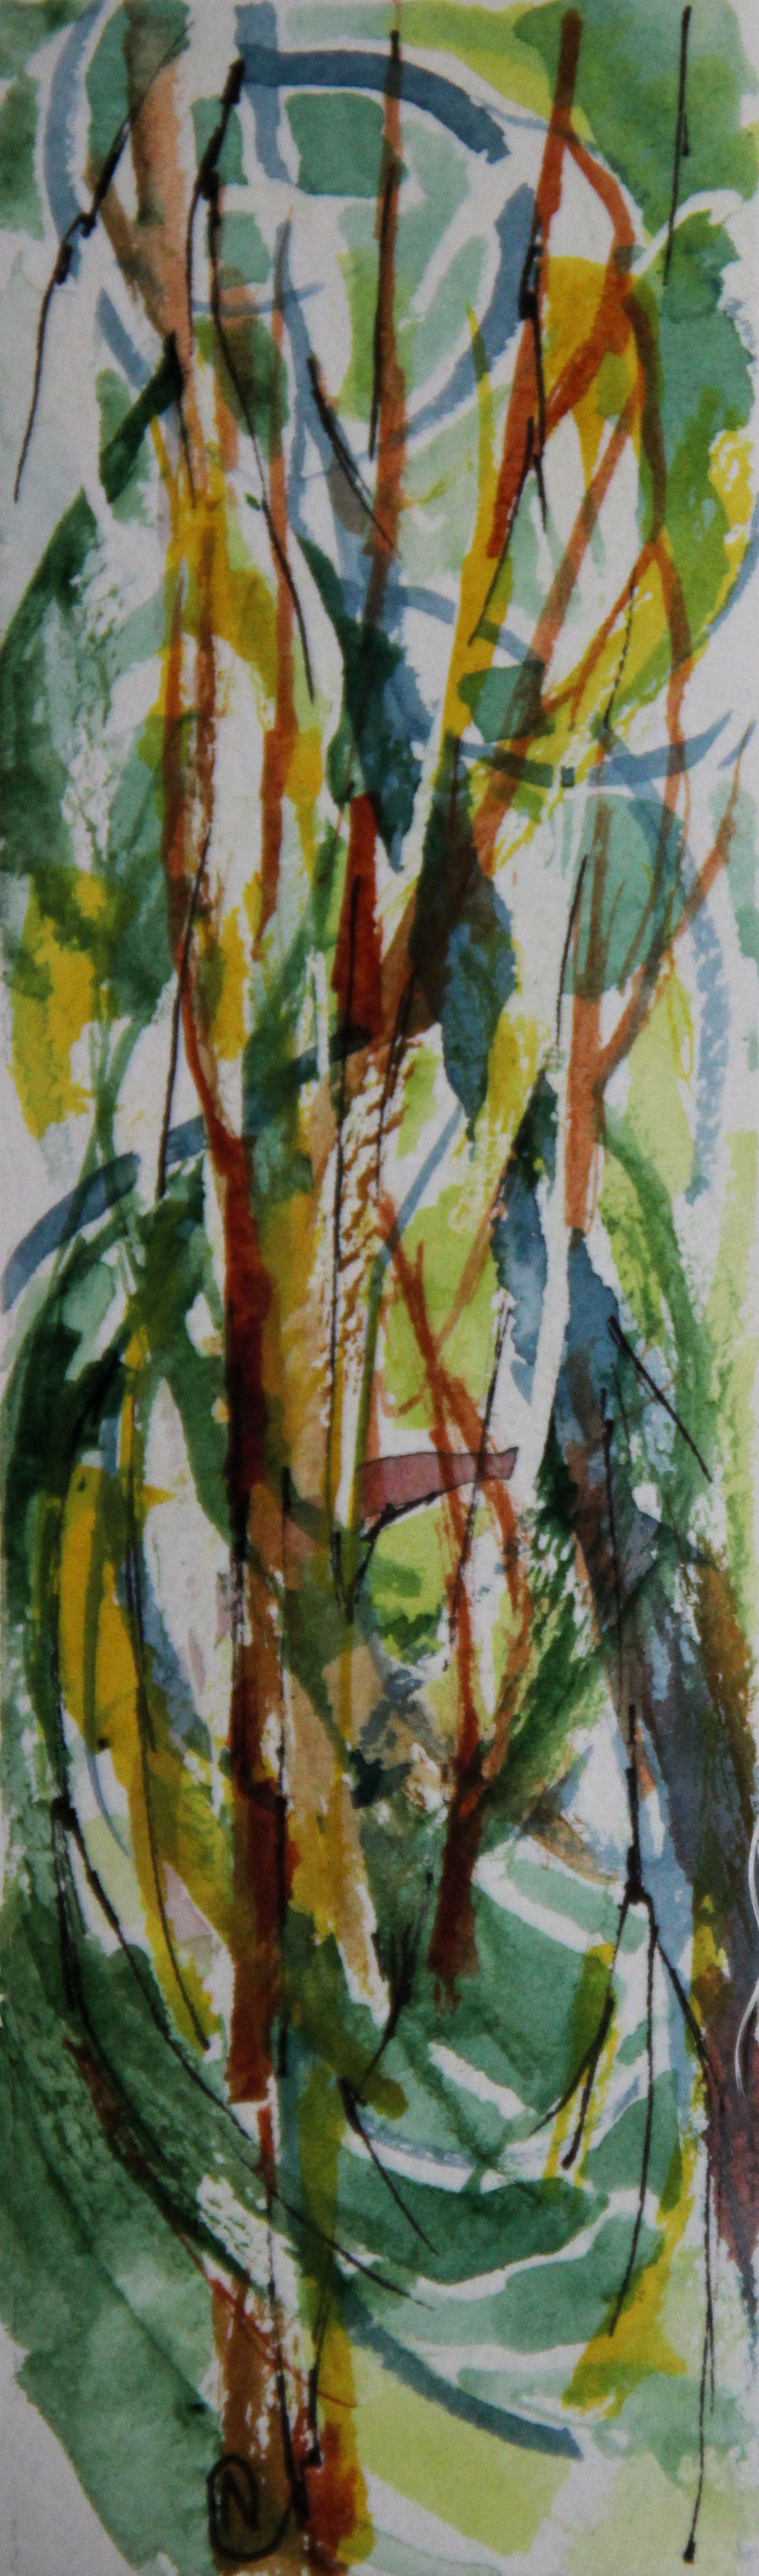 Summer Forest Fantasy 02, 6H x 2W inches watercolors